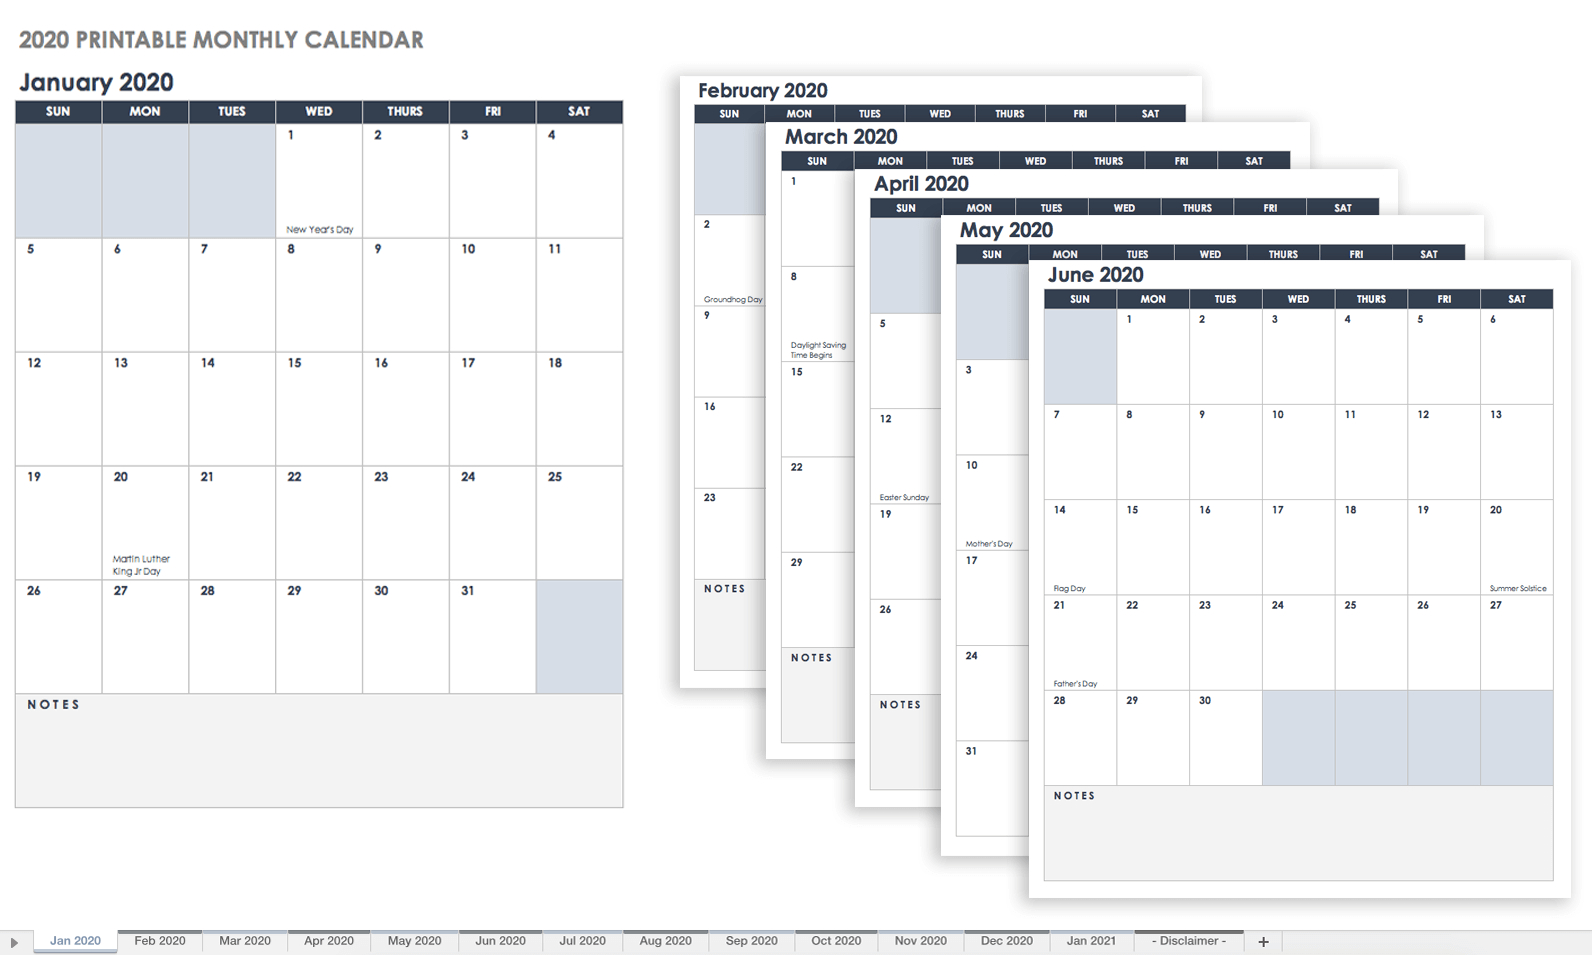 15 Free Monthly Calendar Templates | Smartsheet within Print Blank Workday Calendar For August